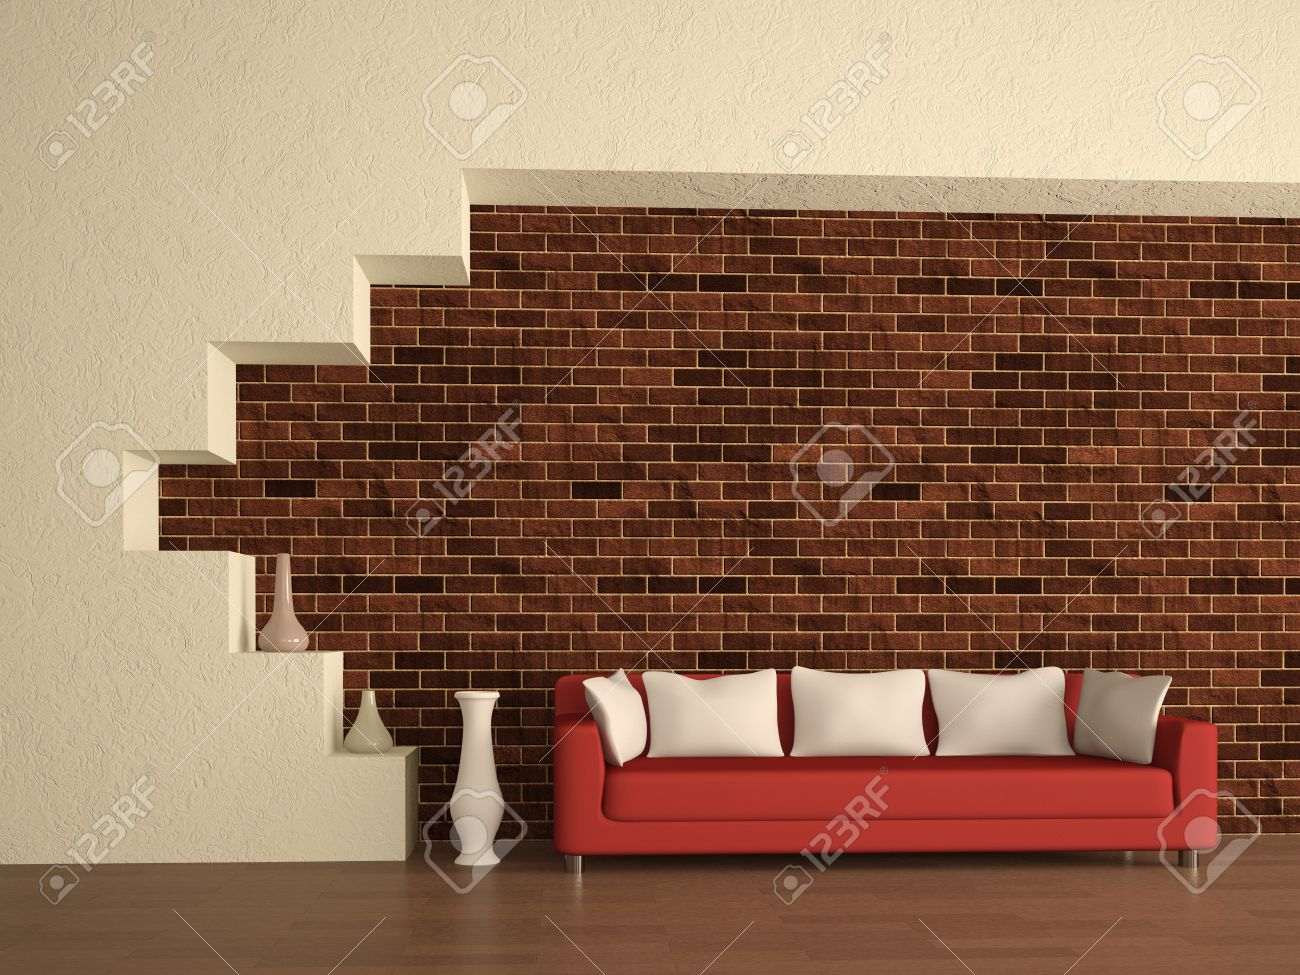 Sofa The Brick Custom The Red Sofa Near A Brick Wall Stock Photo Picture And Royalty . Decorating Inspiration